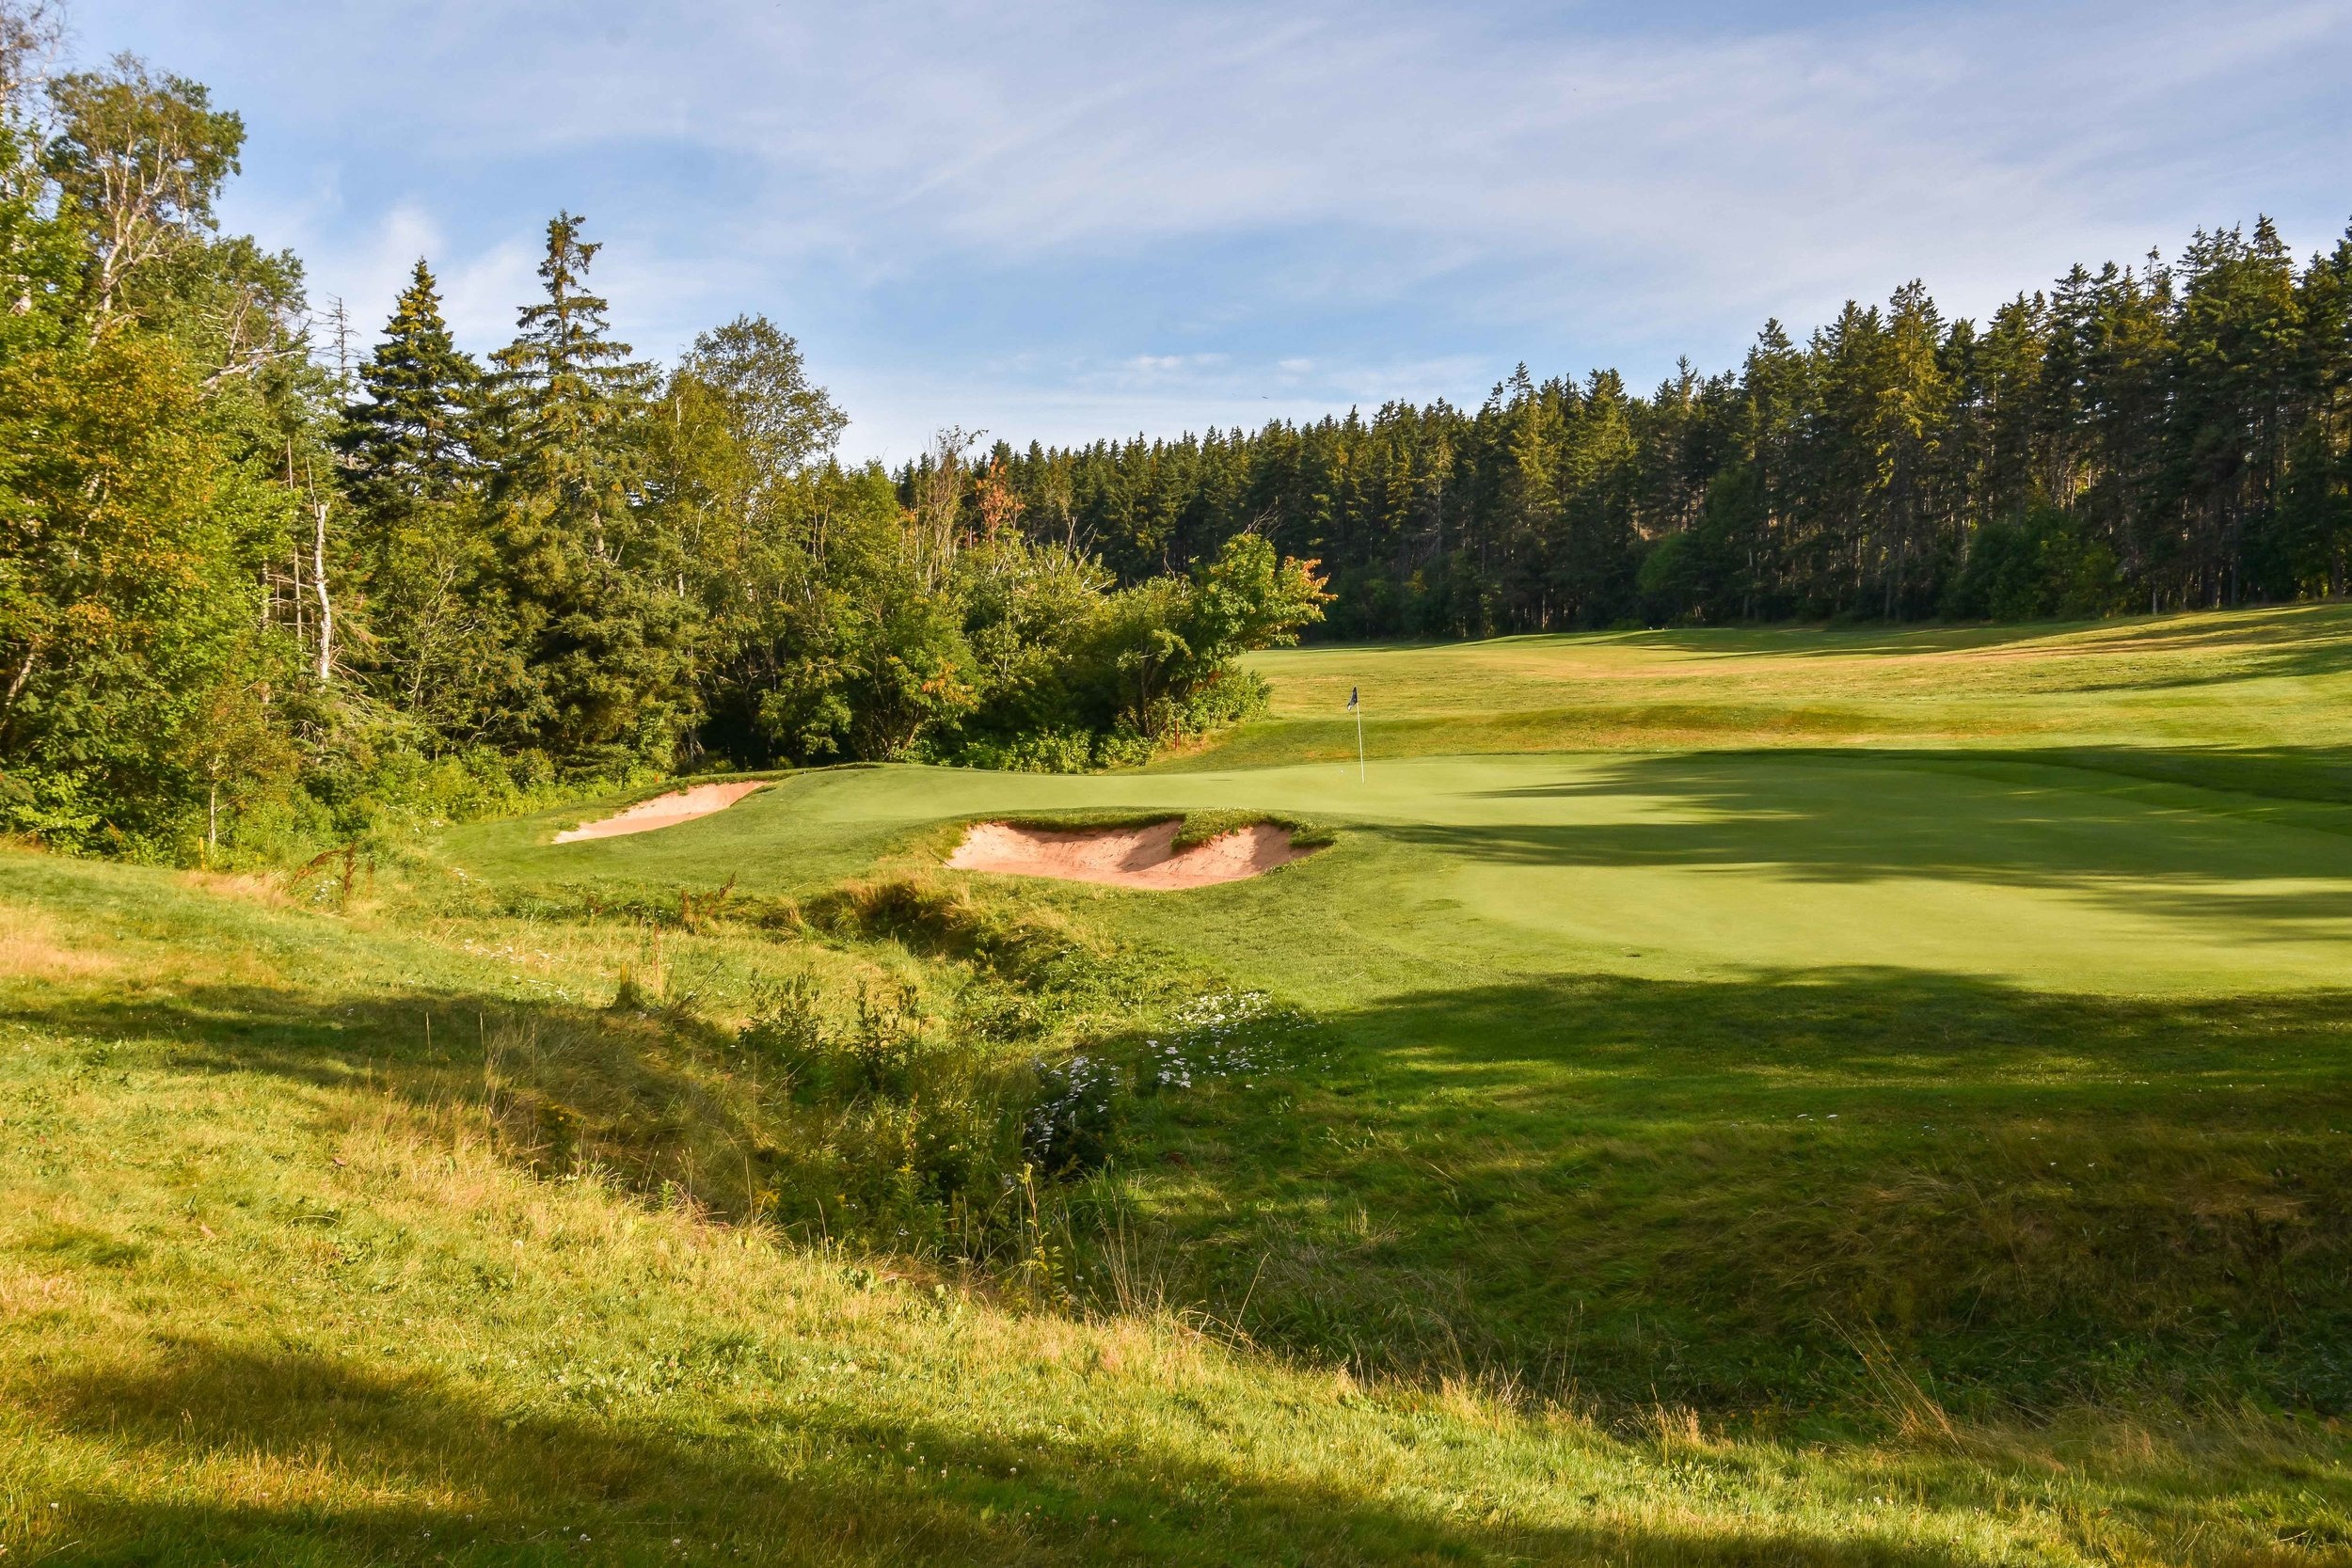 The deliciously fun 5th hole plays over a small creek.